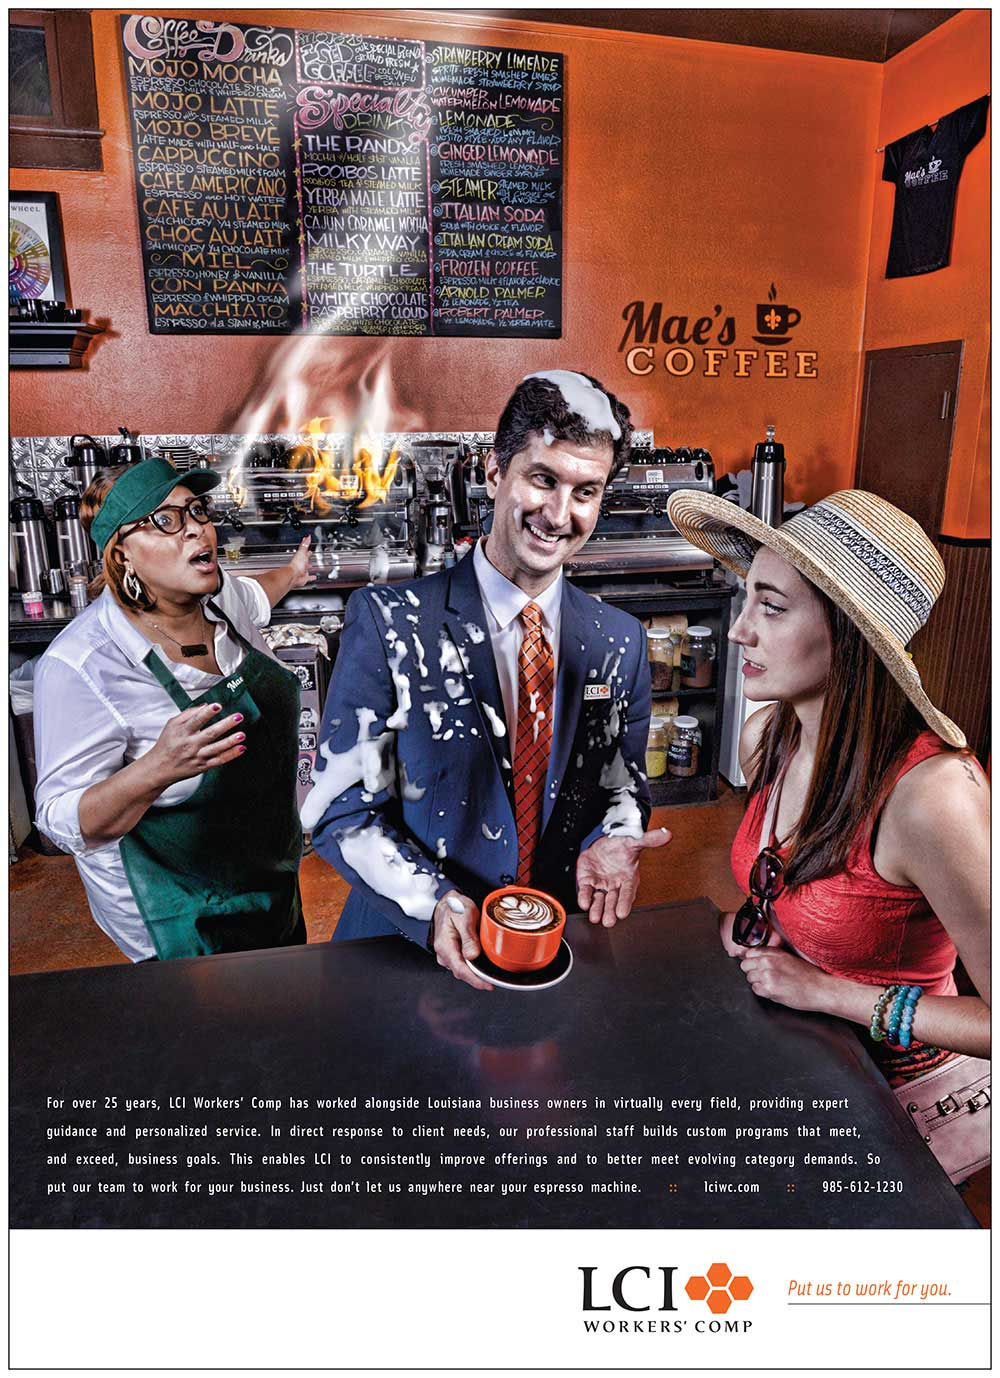 LCI Workers' Comp Print Advertising Design - Barista